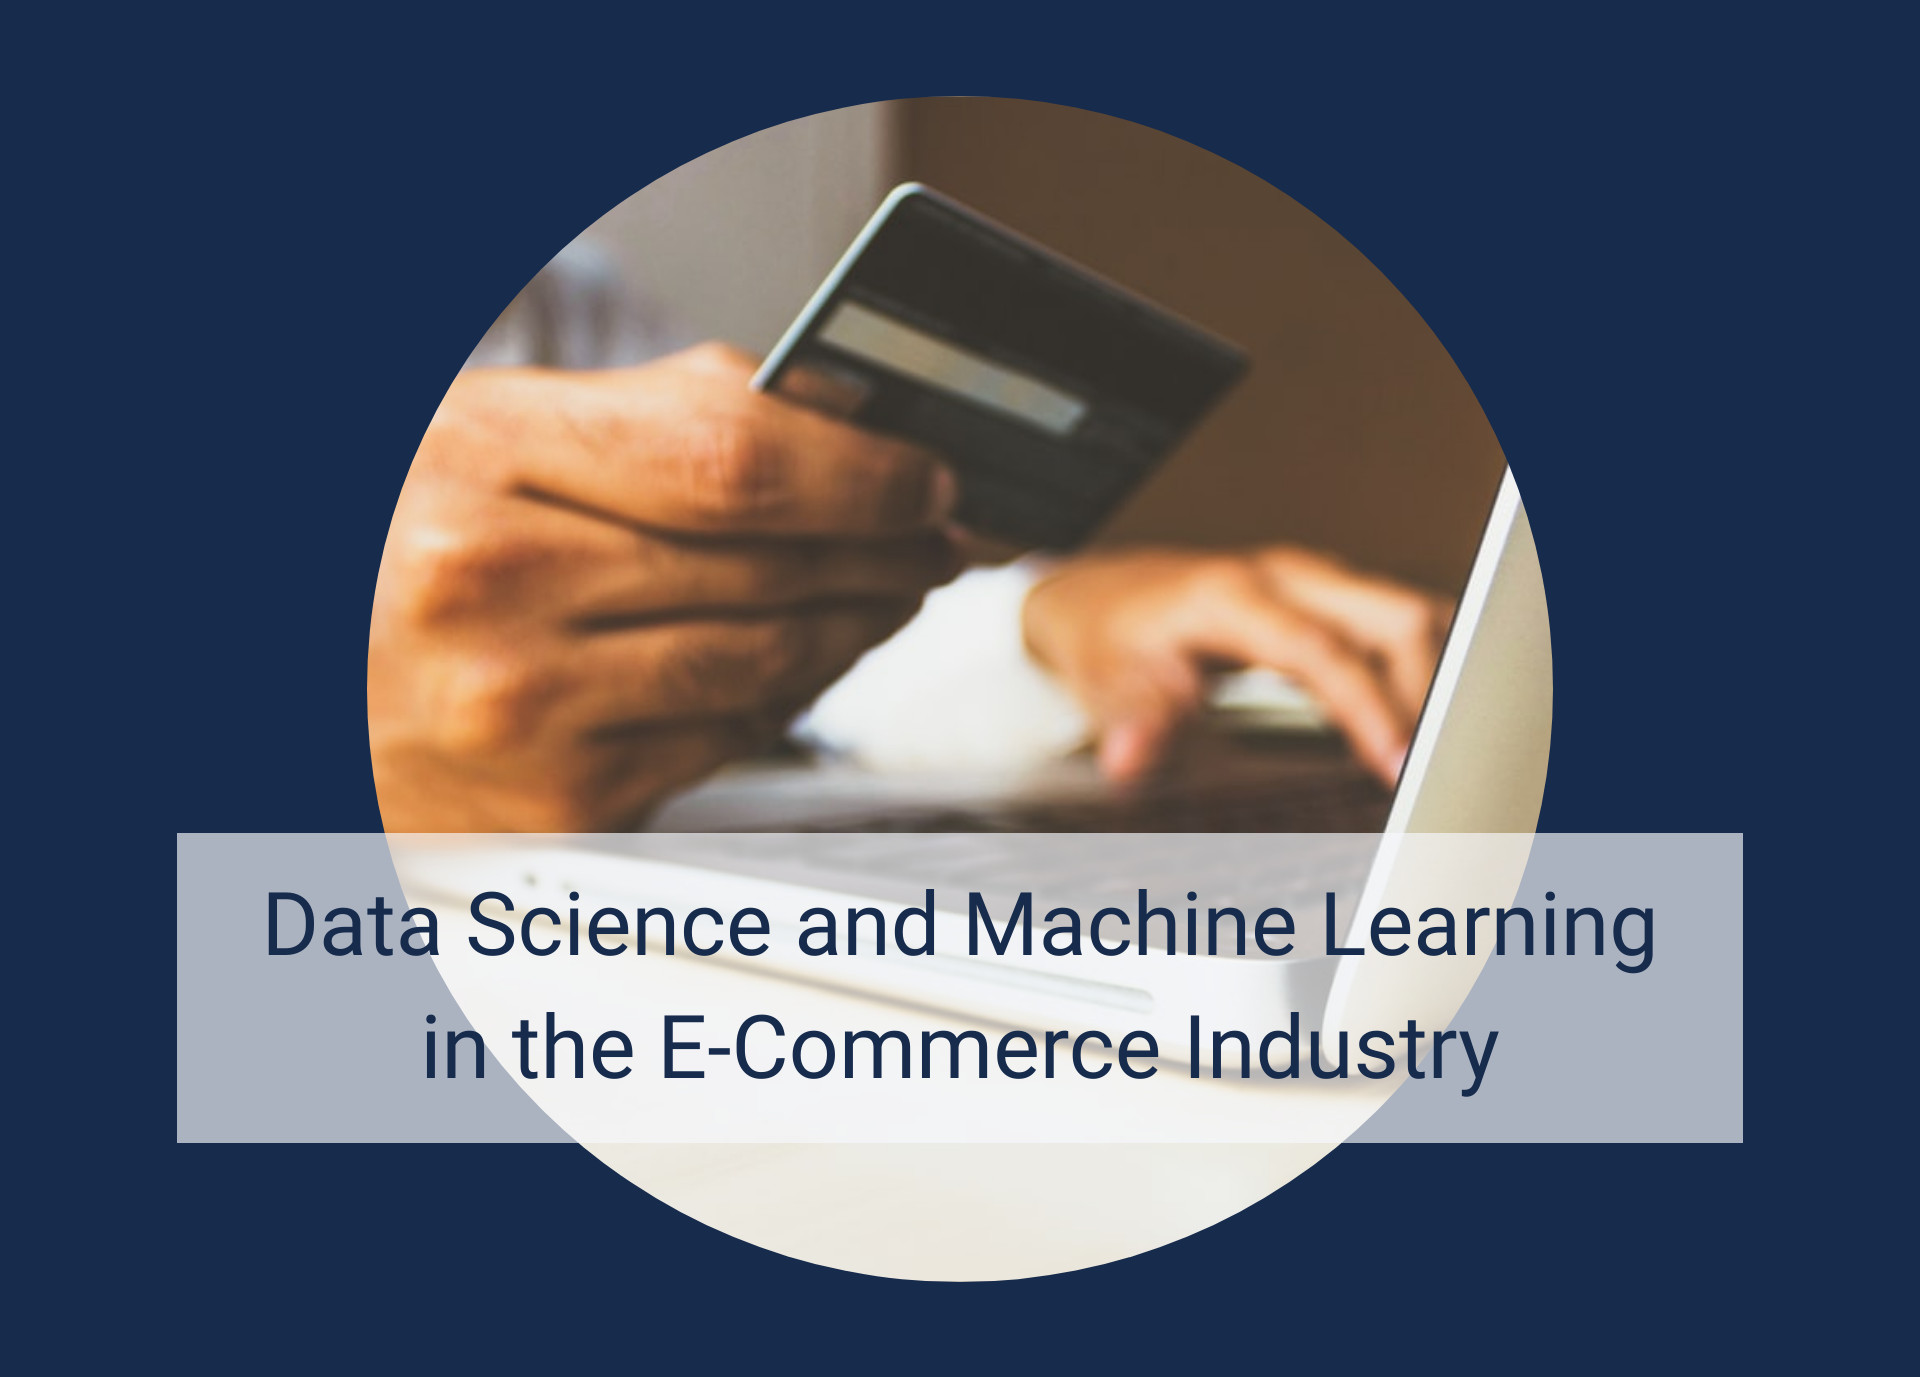 Data Science and Machine Learning in the E-Commerce Industry: Insider Talks About Tools, Use-Cases, Problems, and More